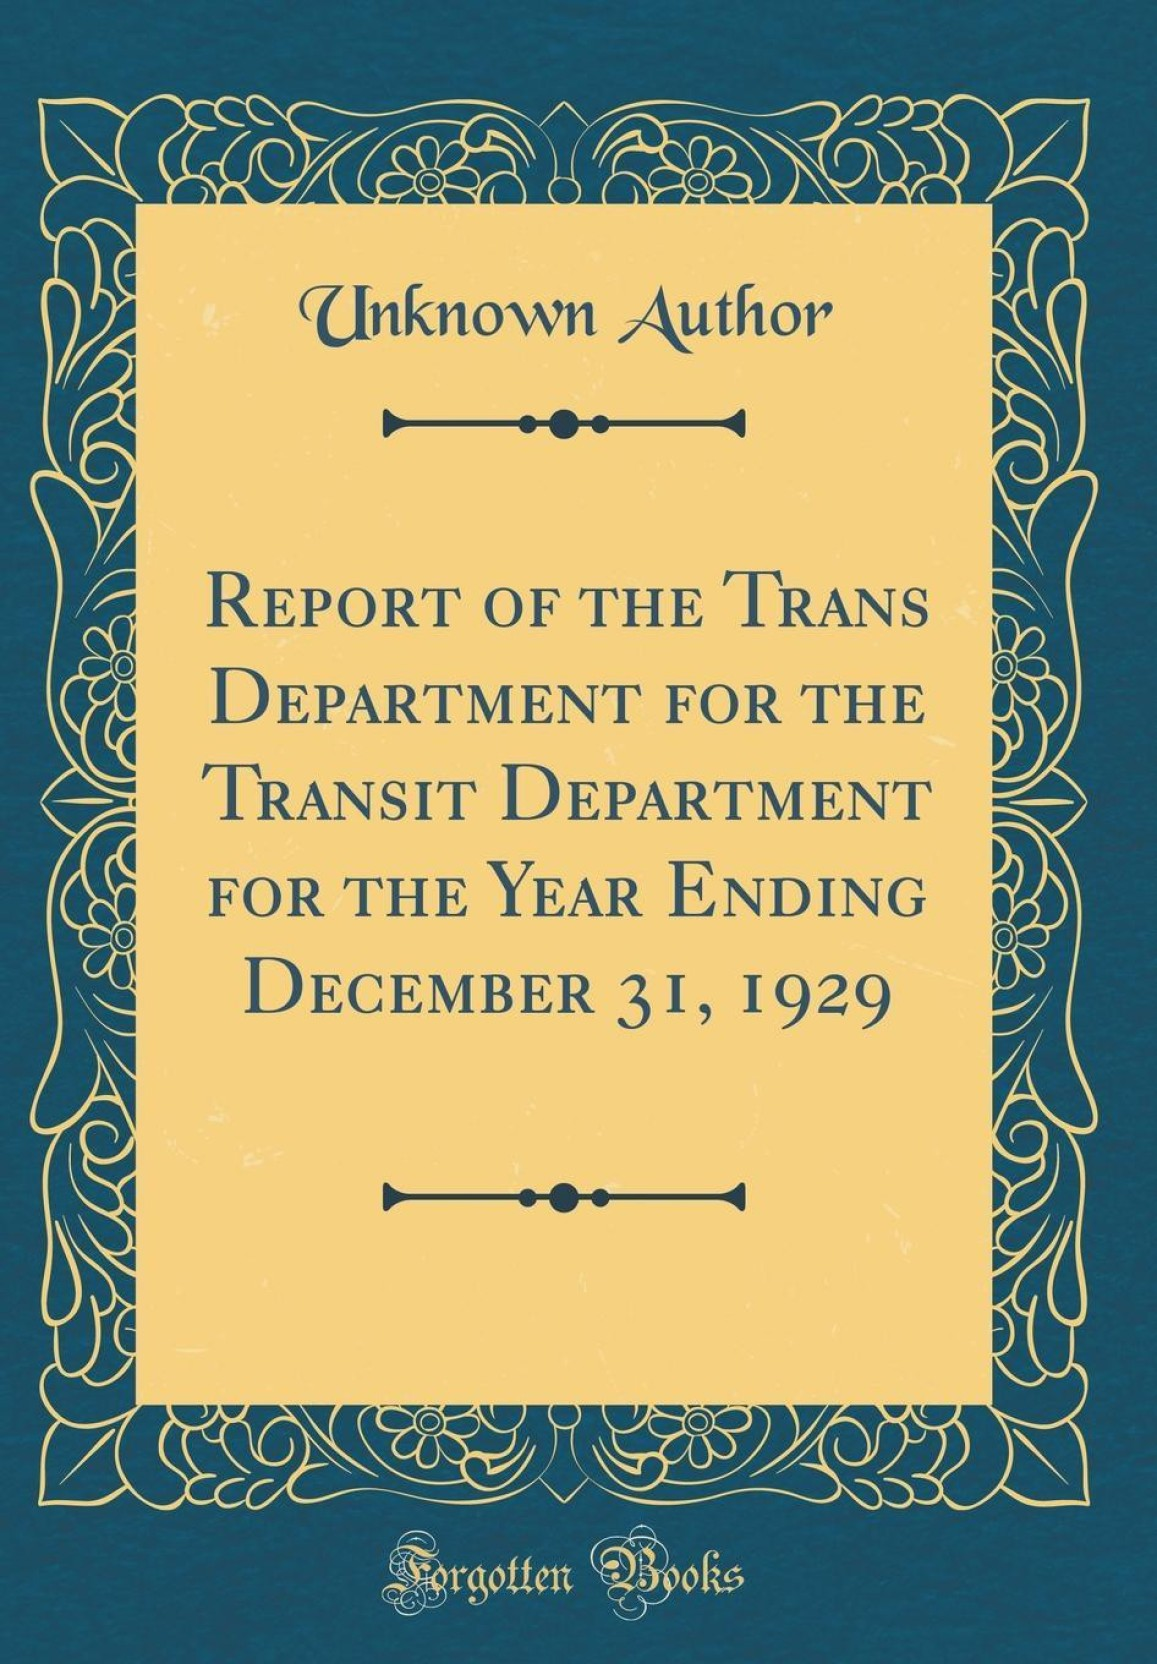 Report of the Trans Department for the Transit Department